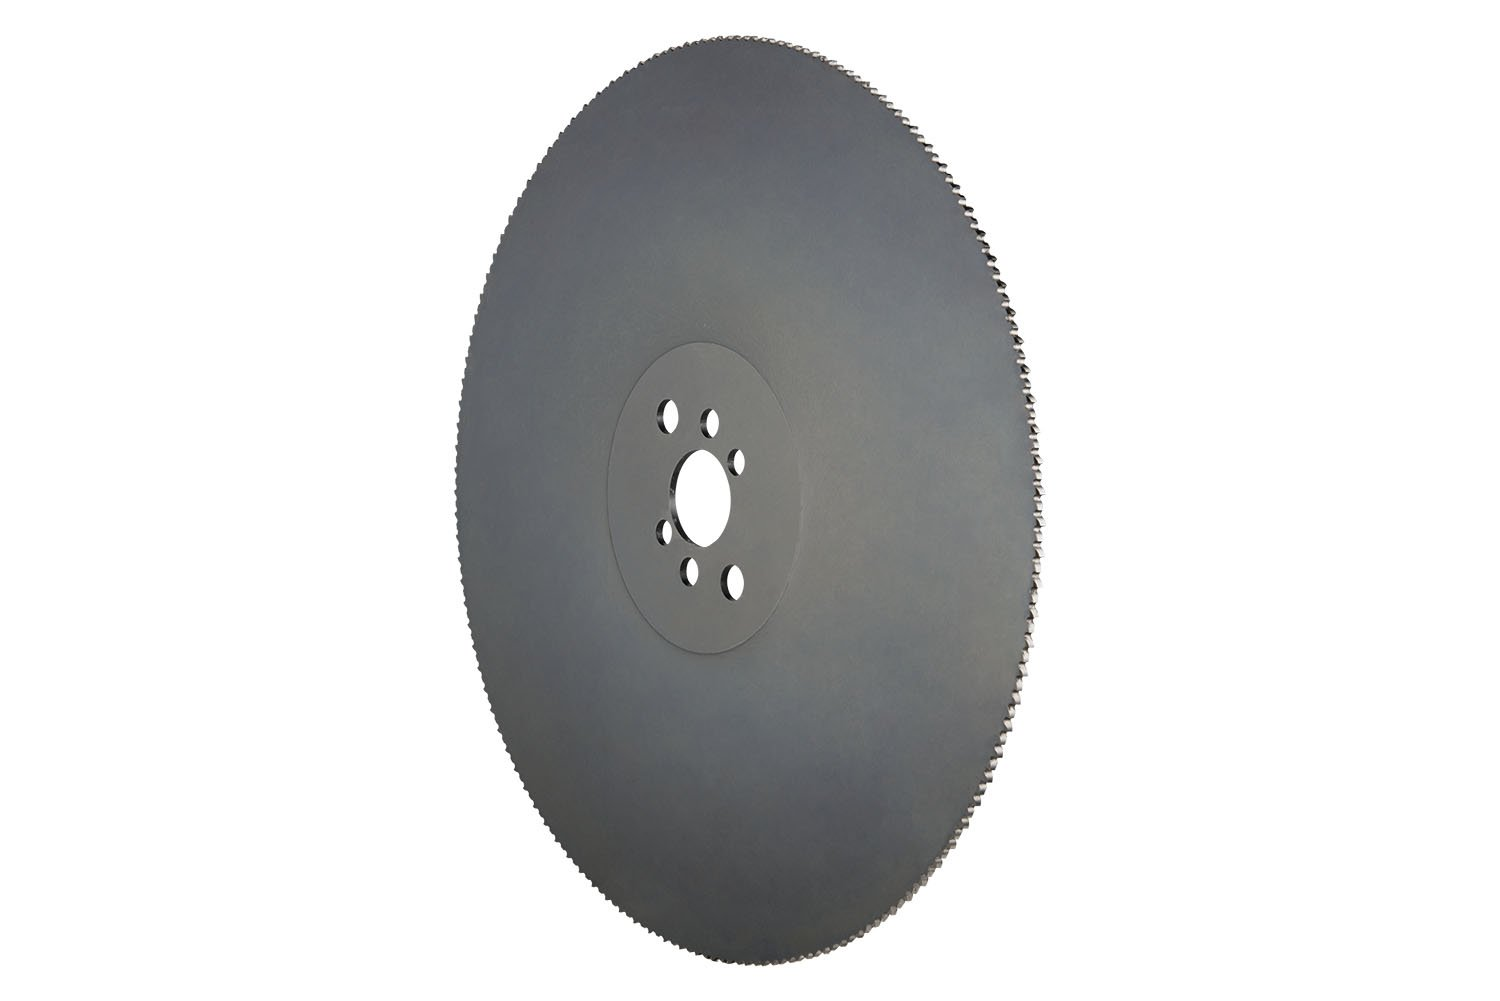 Dormer D752225.0X2.0X120 Metal Slitting Saw Coarse, Steam Tempered Coating, High Speed Steel, Number of Flutes 120, Diameter 225 mm, width 2 mm